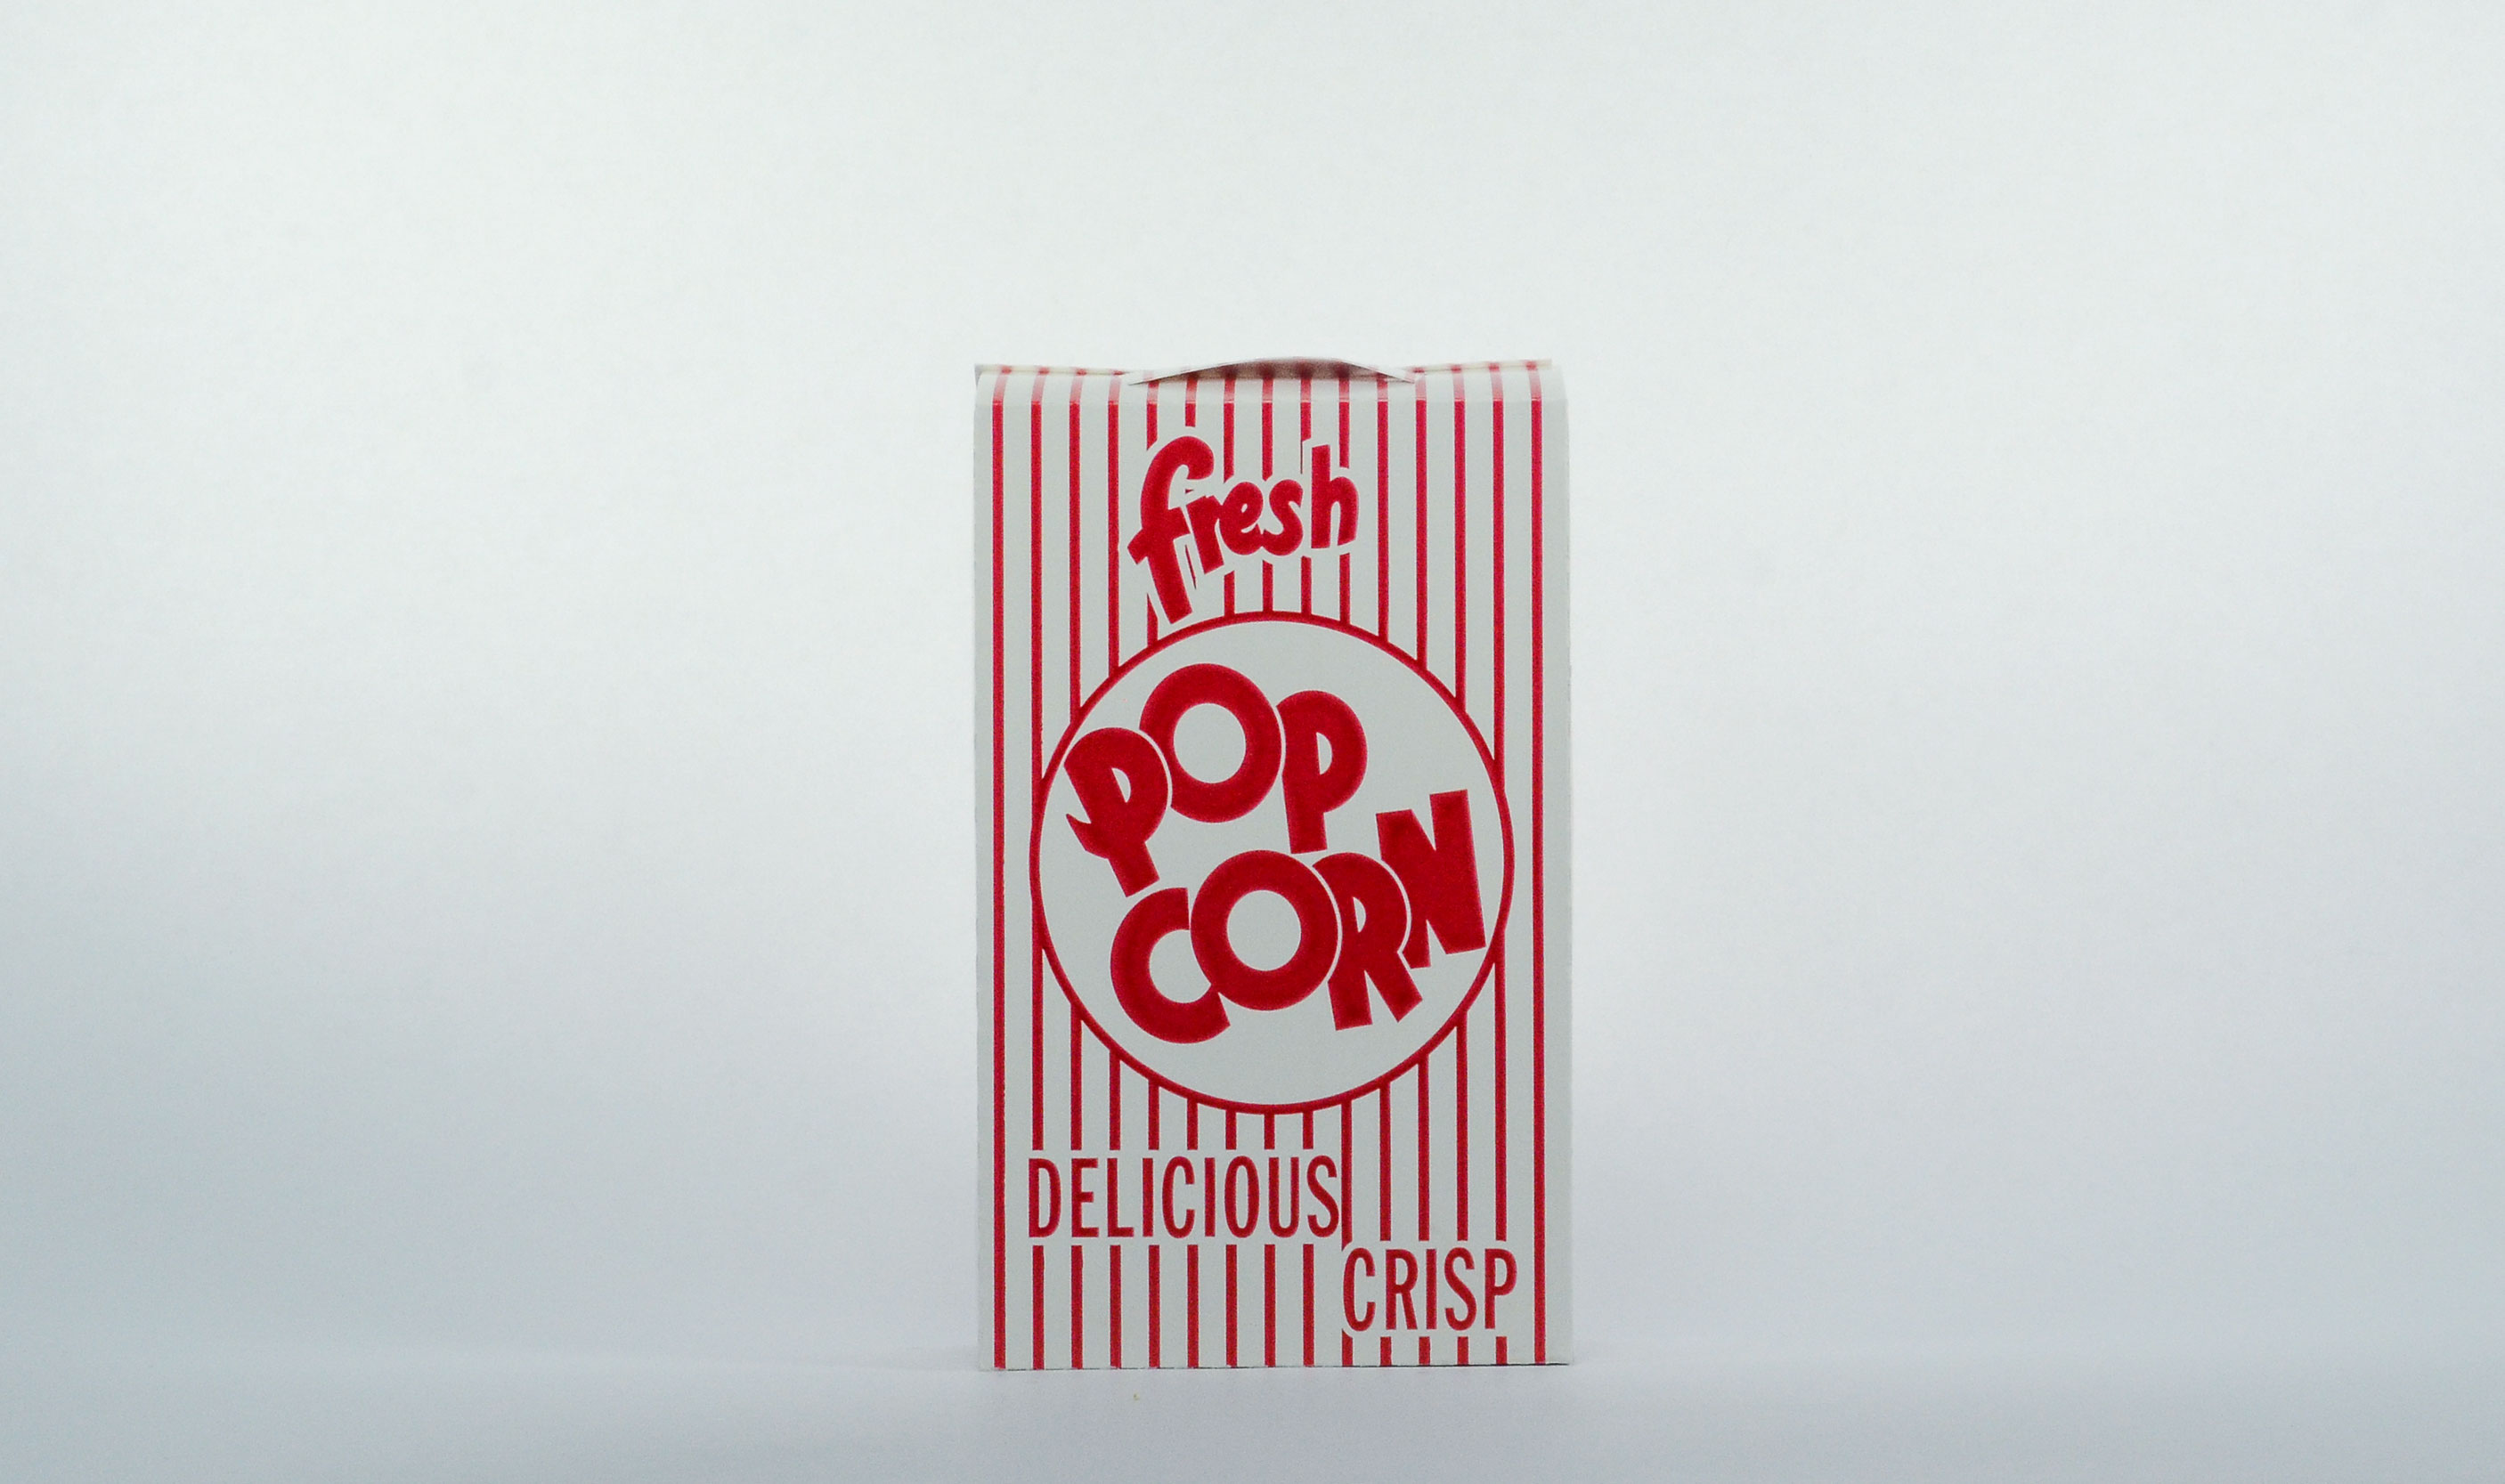 pre-packaged 1 once buttery popcorn box